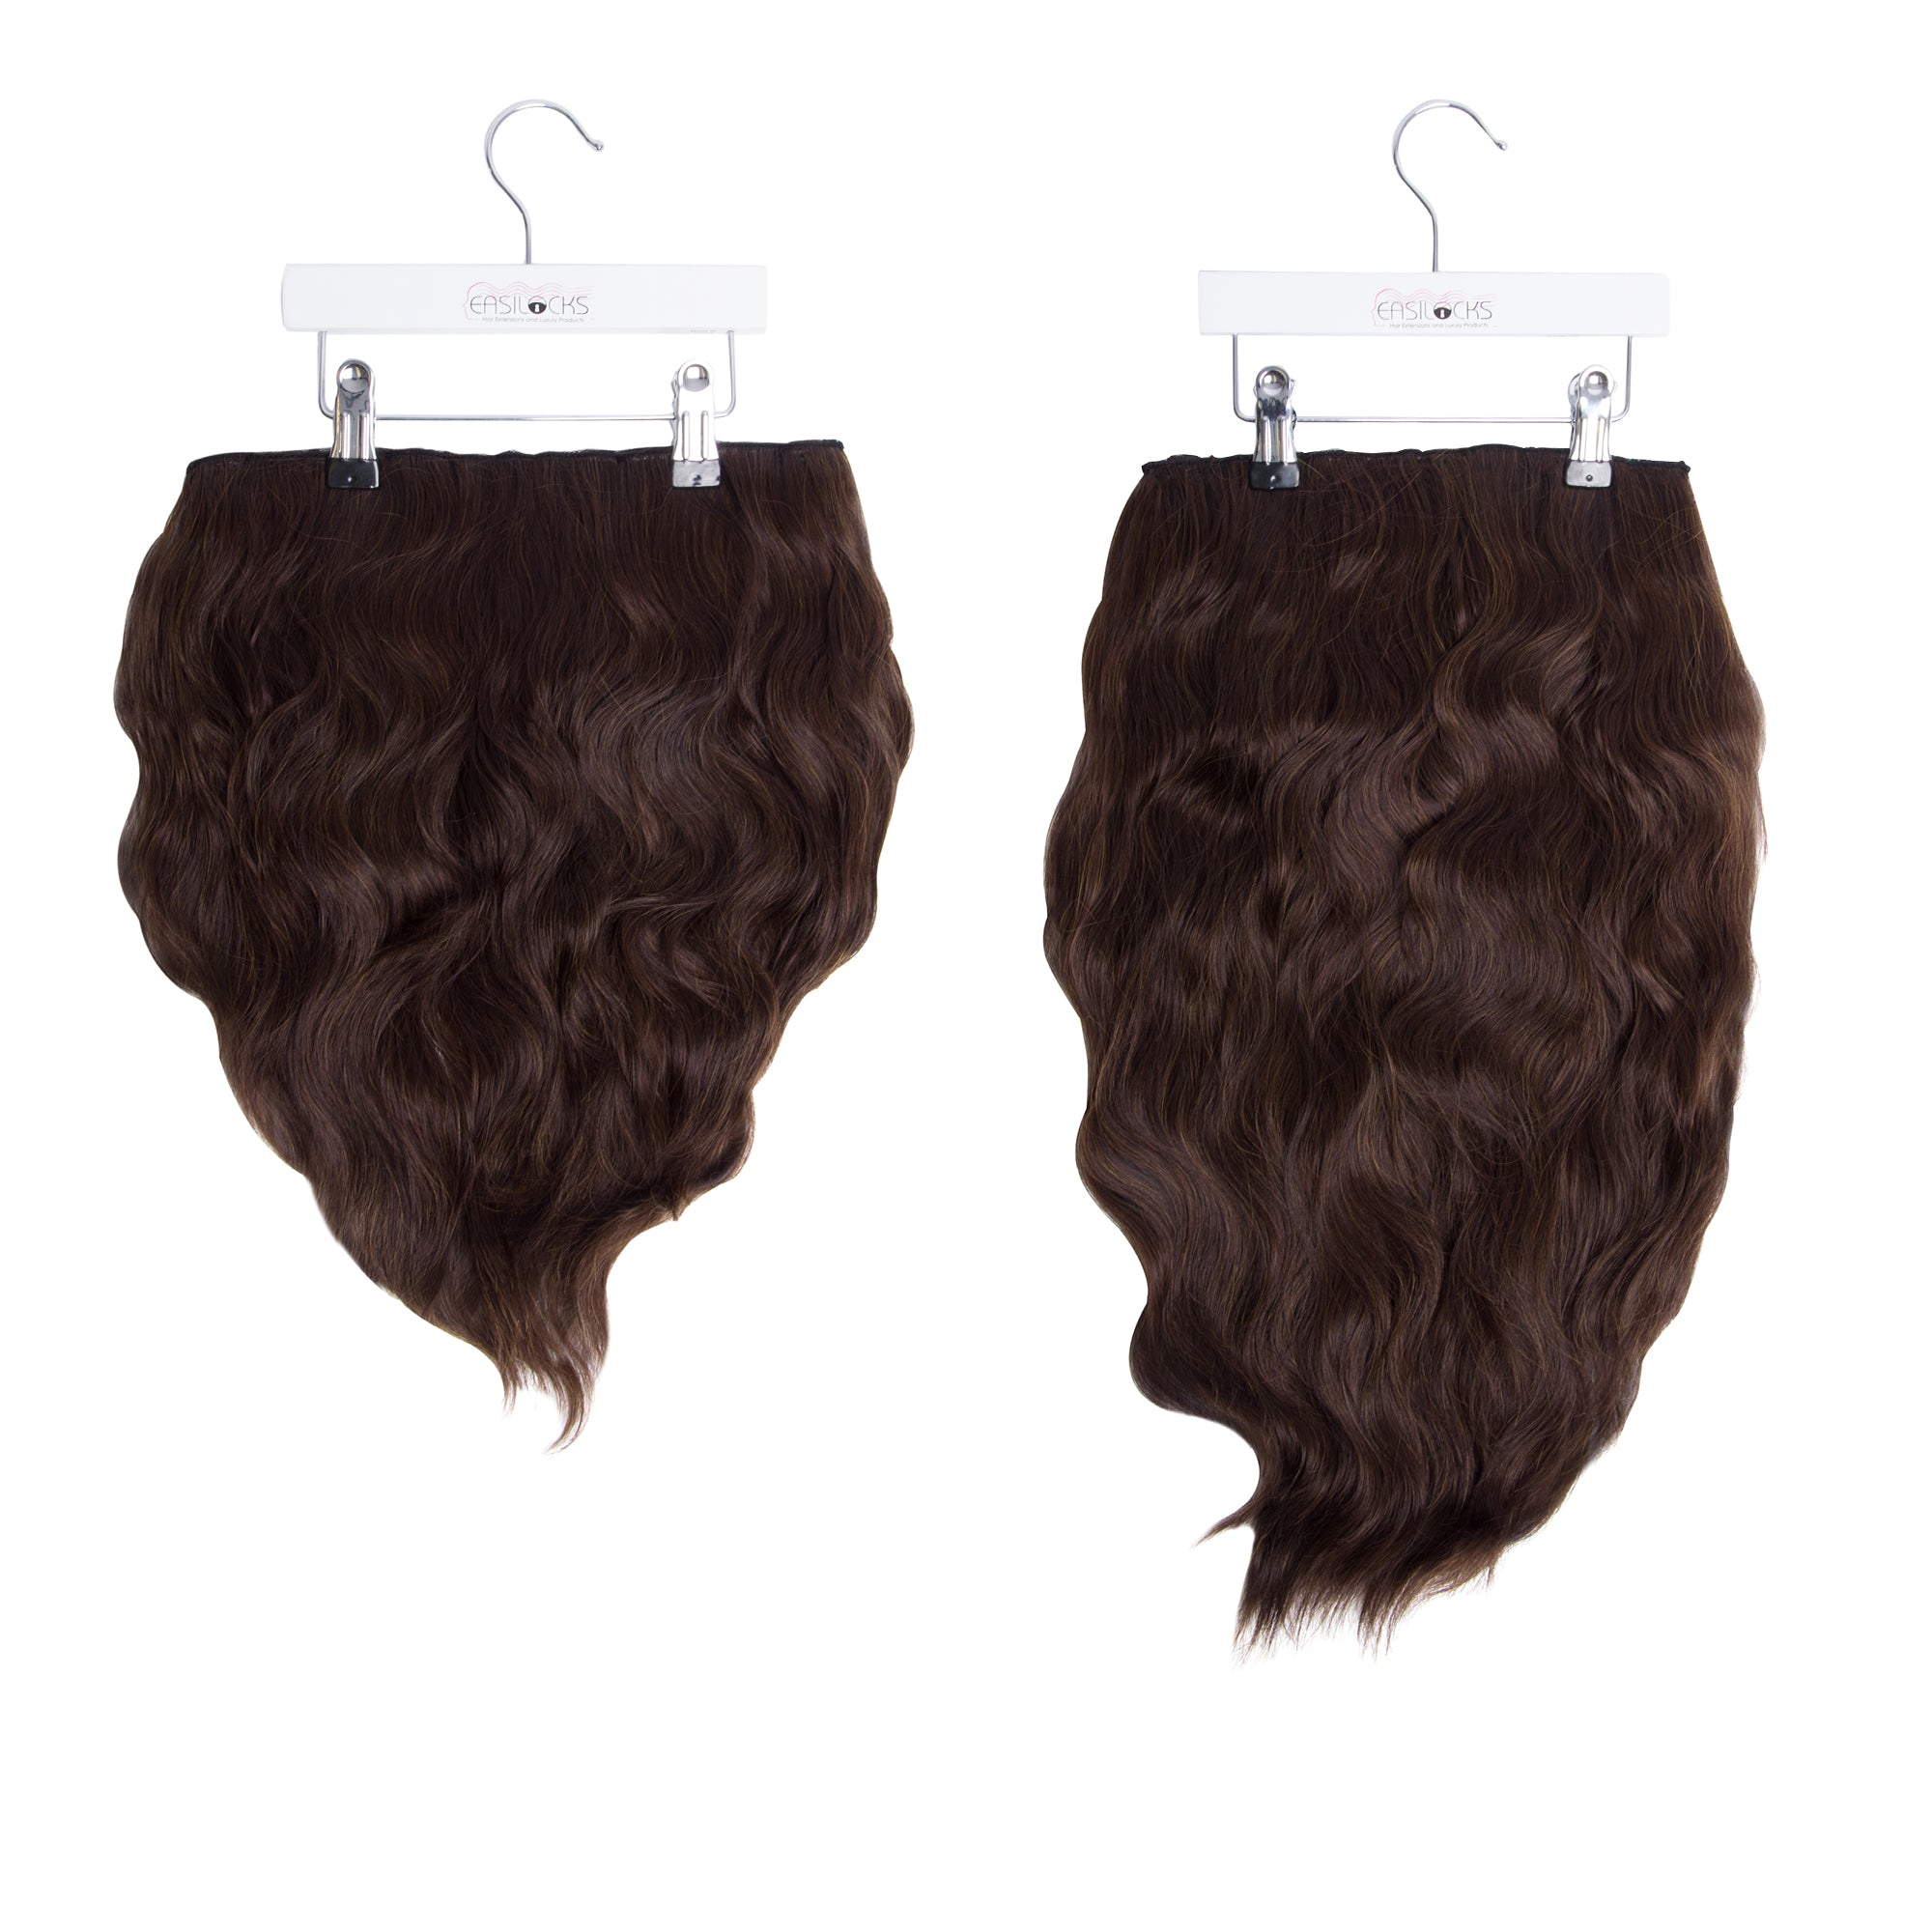 "Miracle Makeover HD Fibre Clip In Hair Extensions - 14"" & 22"" - Medium Brown (1319143768144)"